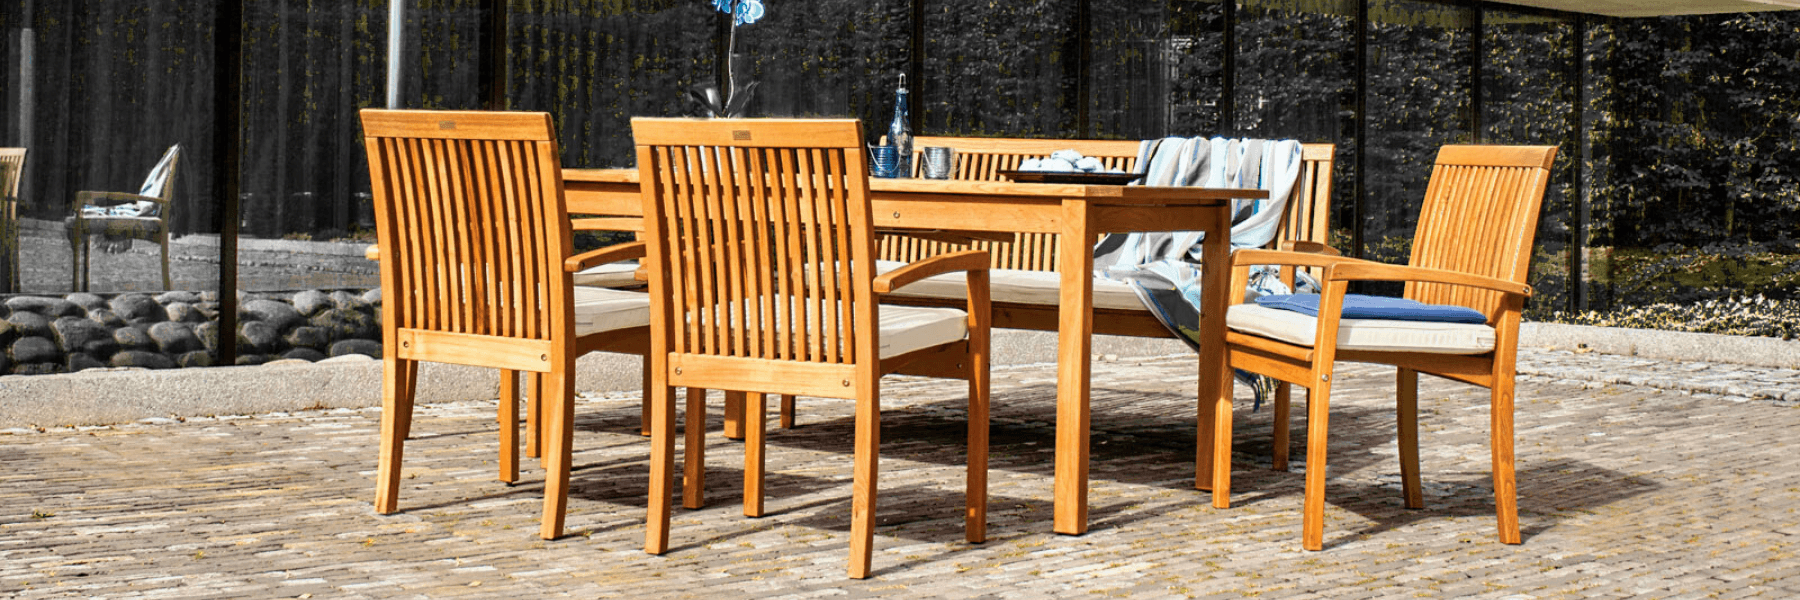 <p>Outdoor Furniture – Wooden Dining Collection Fuera.</p> <p> </p> <p>Fuera Furniture – Stylish elegant Hardwearing Table and Armchairs.</p> <p> </p> <p>Equally at home within an exquisite restaurant setting as it is on a garden patio or hotel terrace. Chairs are easy to stack and store away</p>